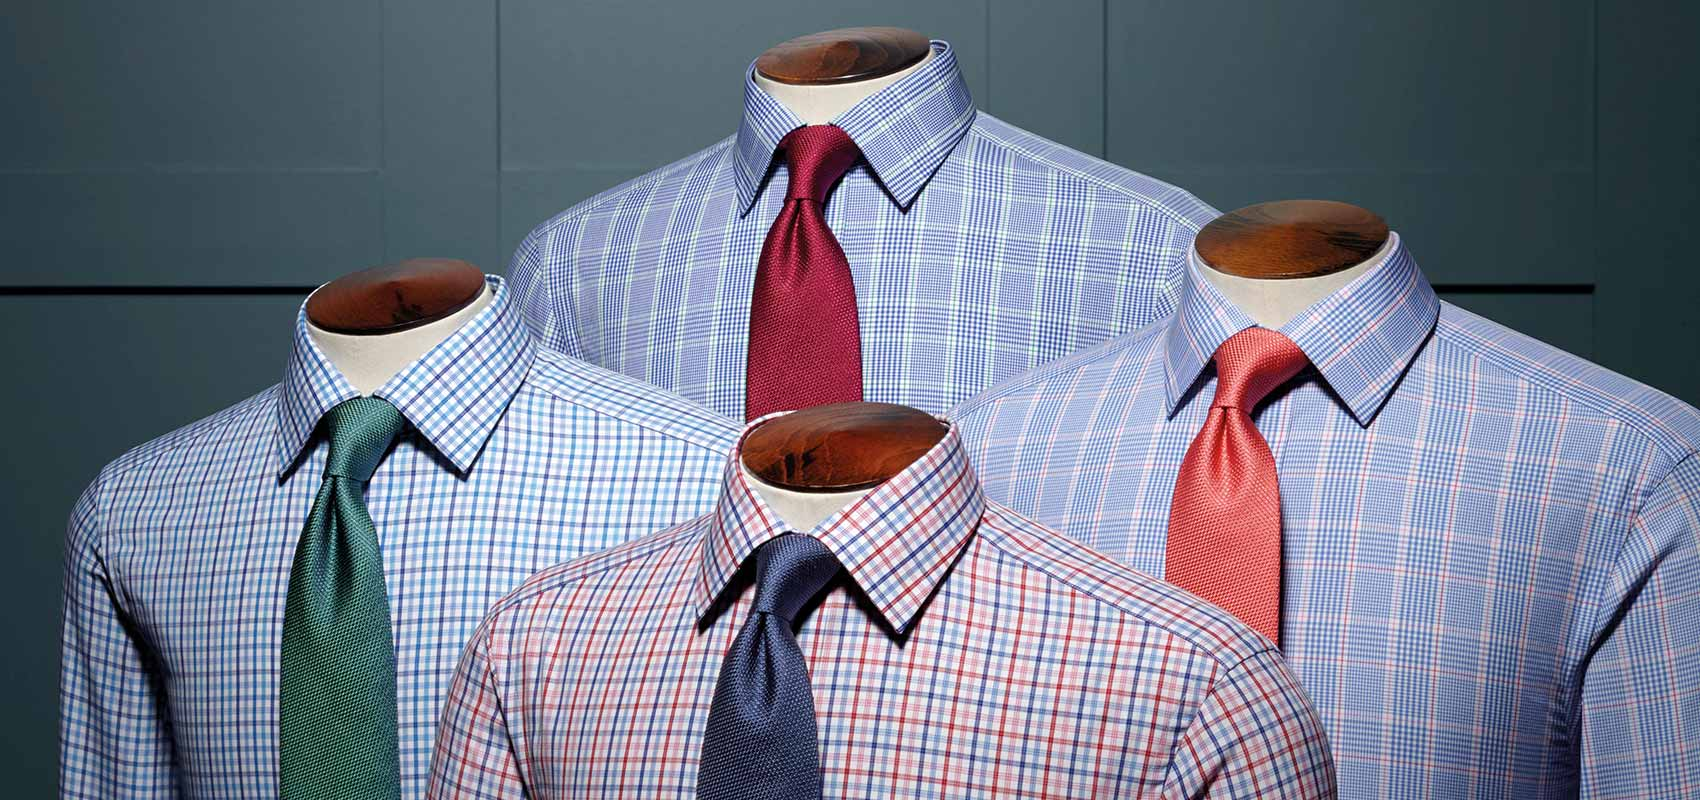 Extra slim fit shirts